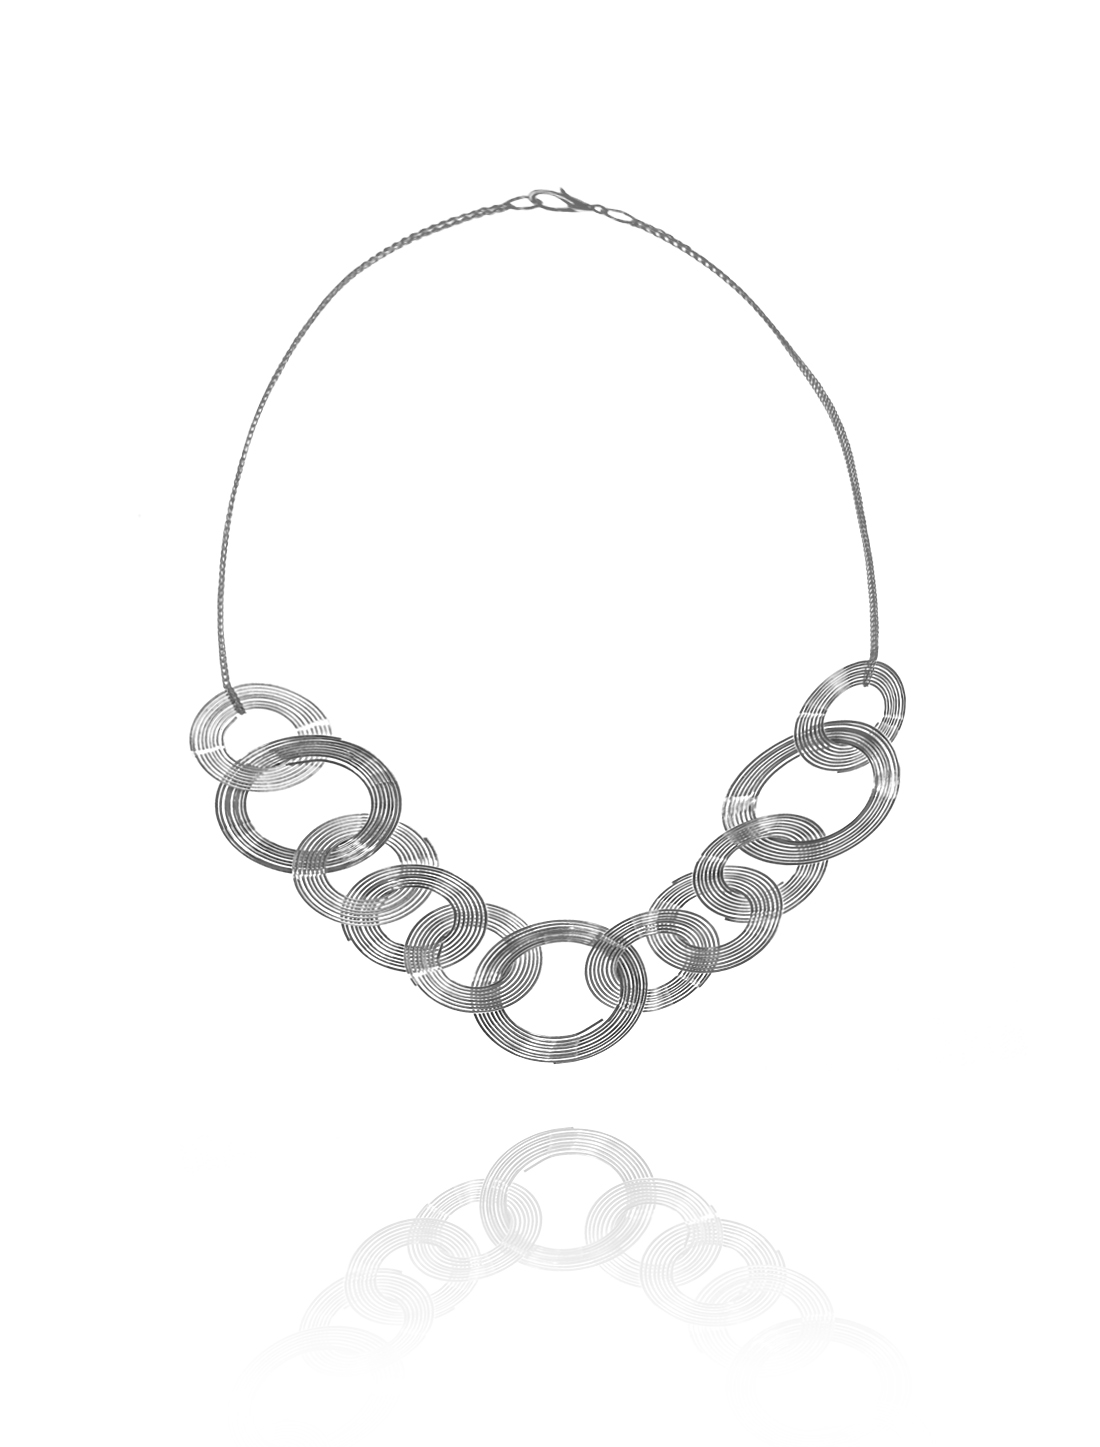 Gray Circle Statement Alloy Pendant Chain Bib Chunky Necklace Choker